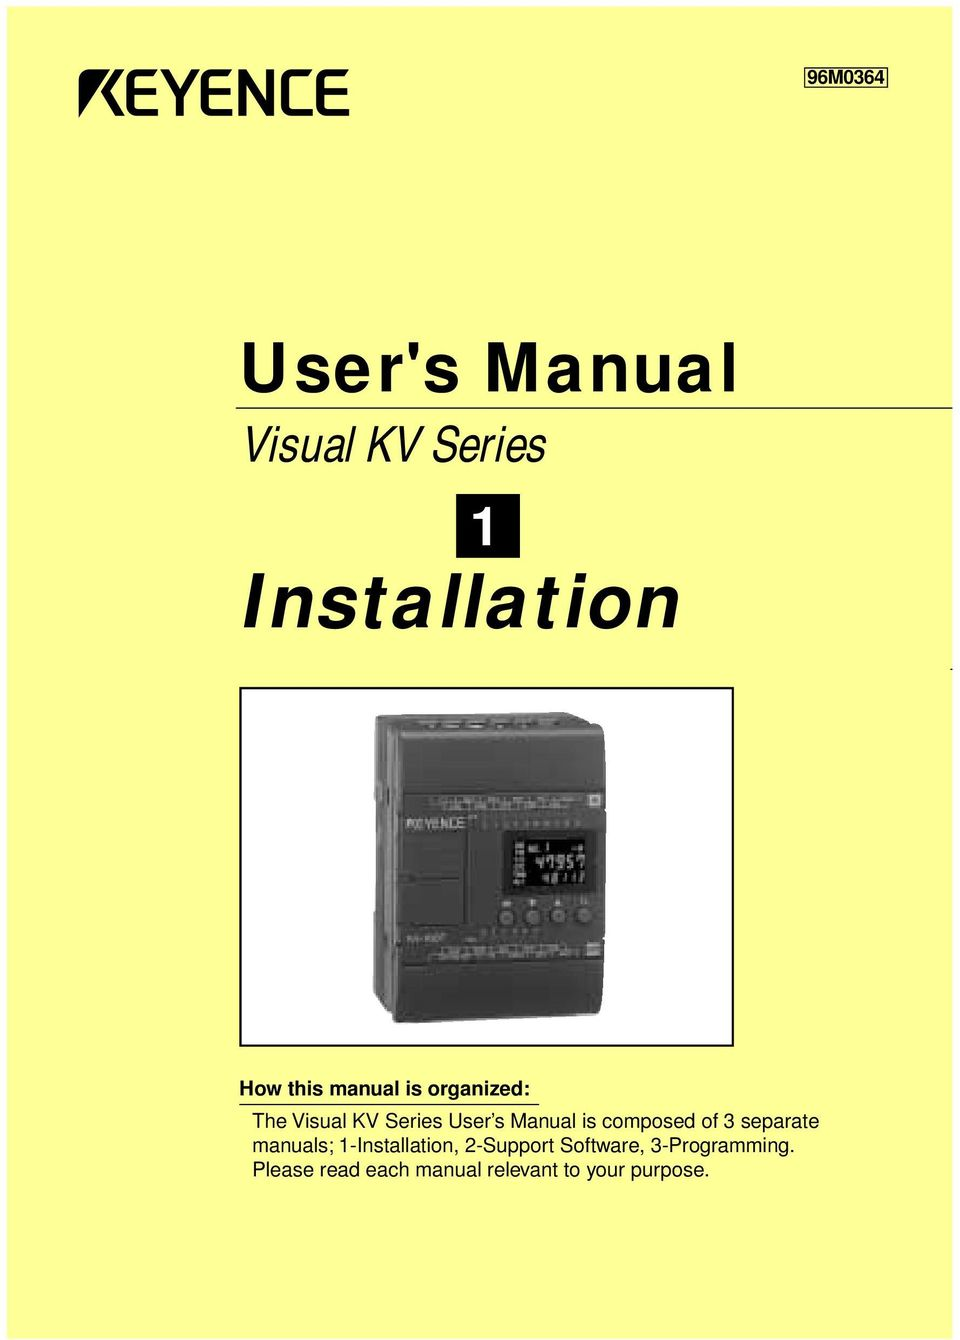 composed of 3 separate manuals; -Installation, 2-Support